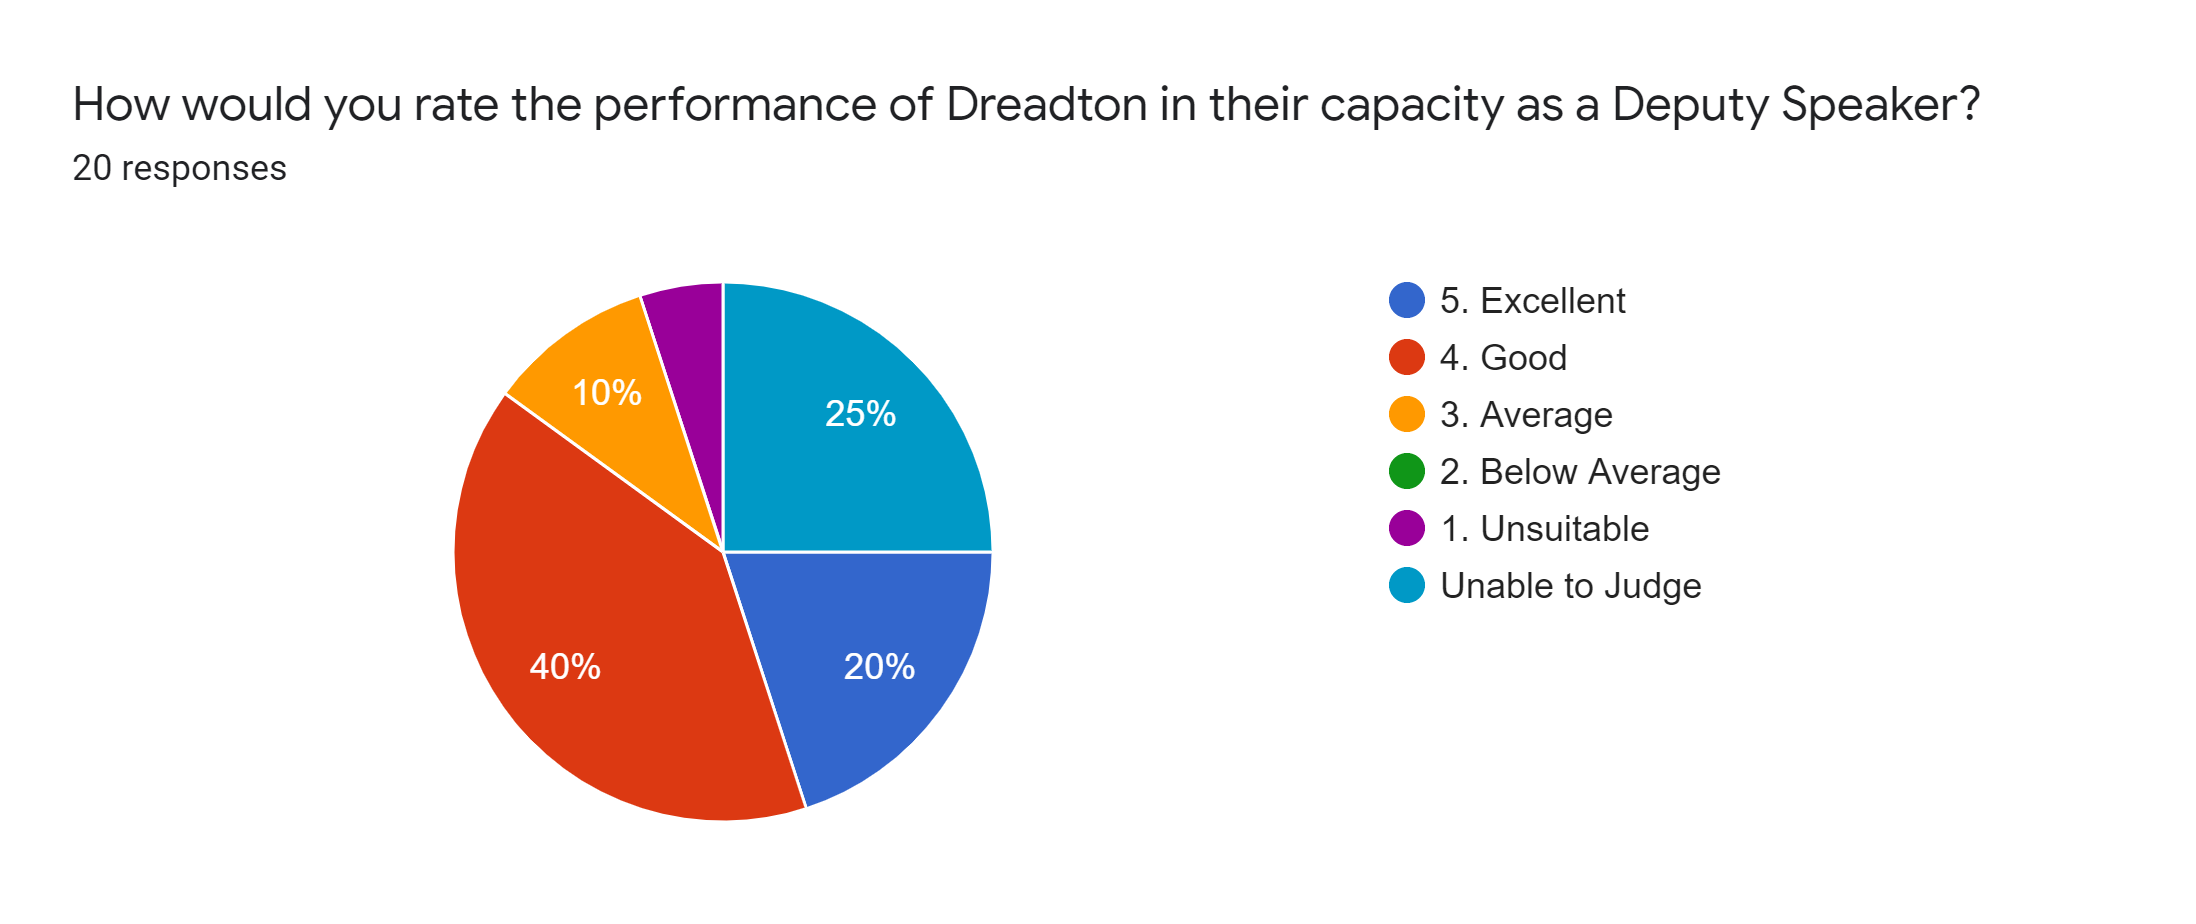 Forms response chart. Question title: How would you rate the performance of Dreadton in their capacity as a Deputy Speaker?. Number of responses: 20 responses.